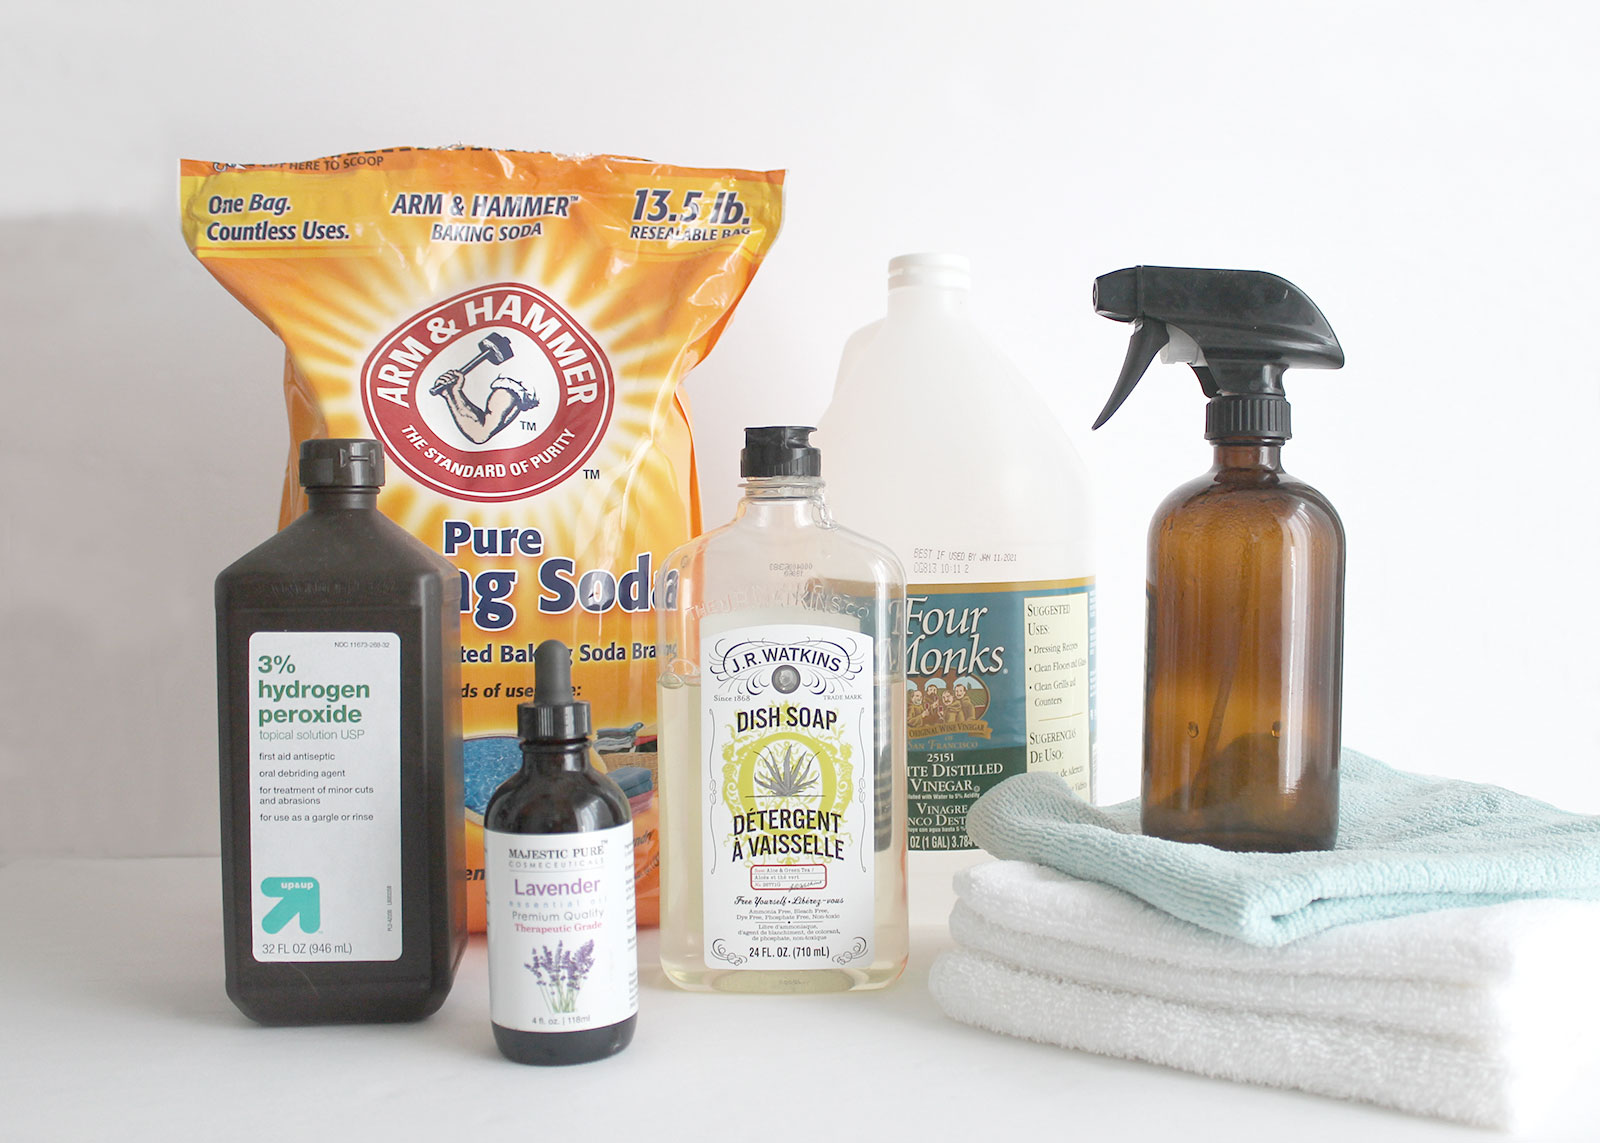 20 Zero Waste Cleaning Products For The Entire Home